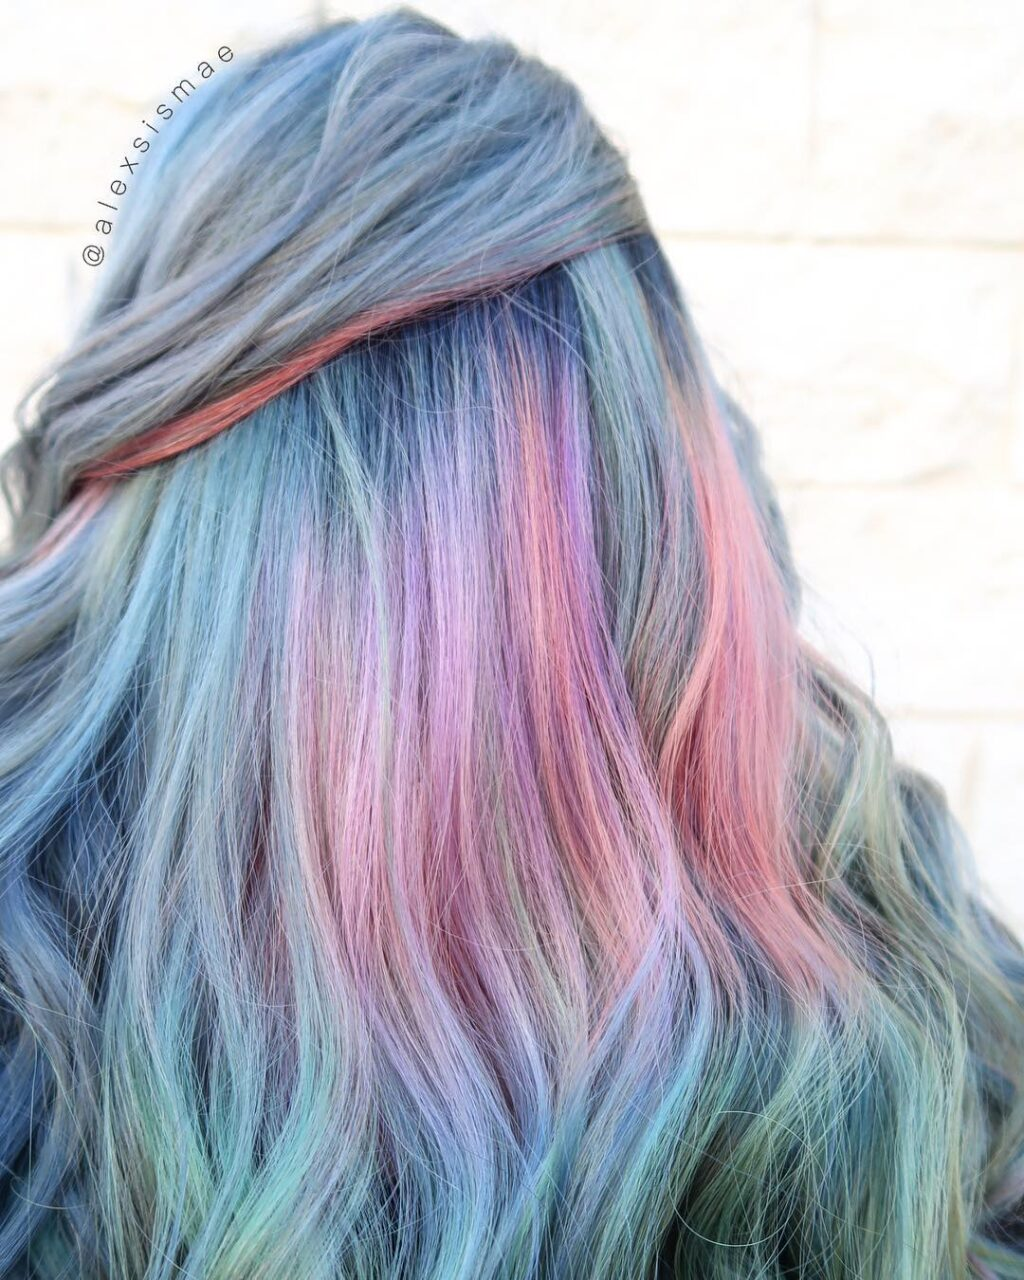 Oil slick hair blonde 1